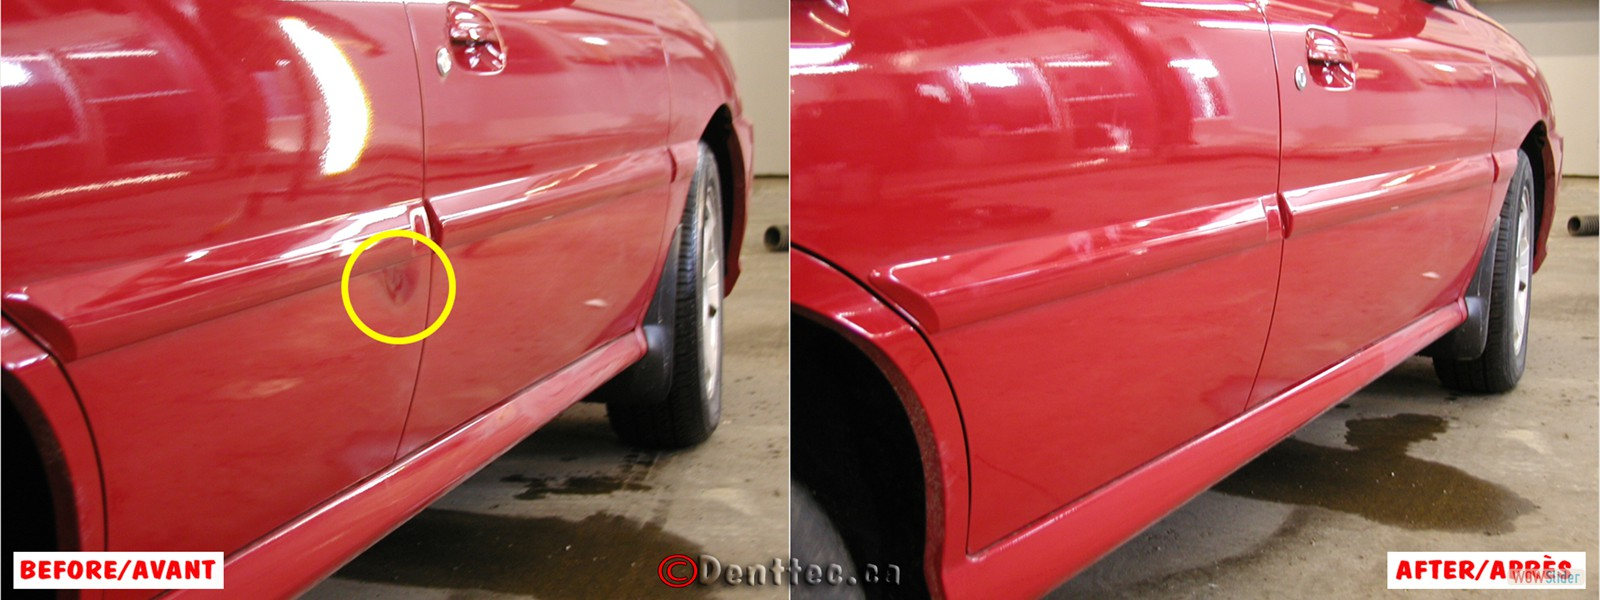 DentTec_26 Dent Under Door Molding Red Car